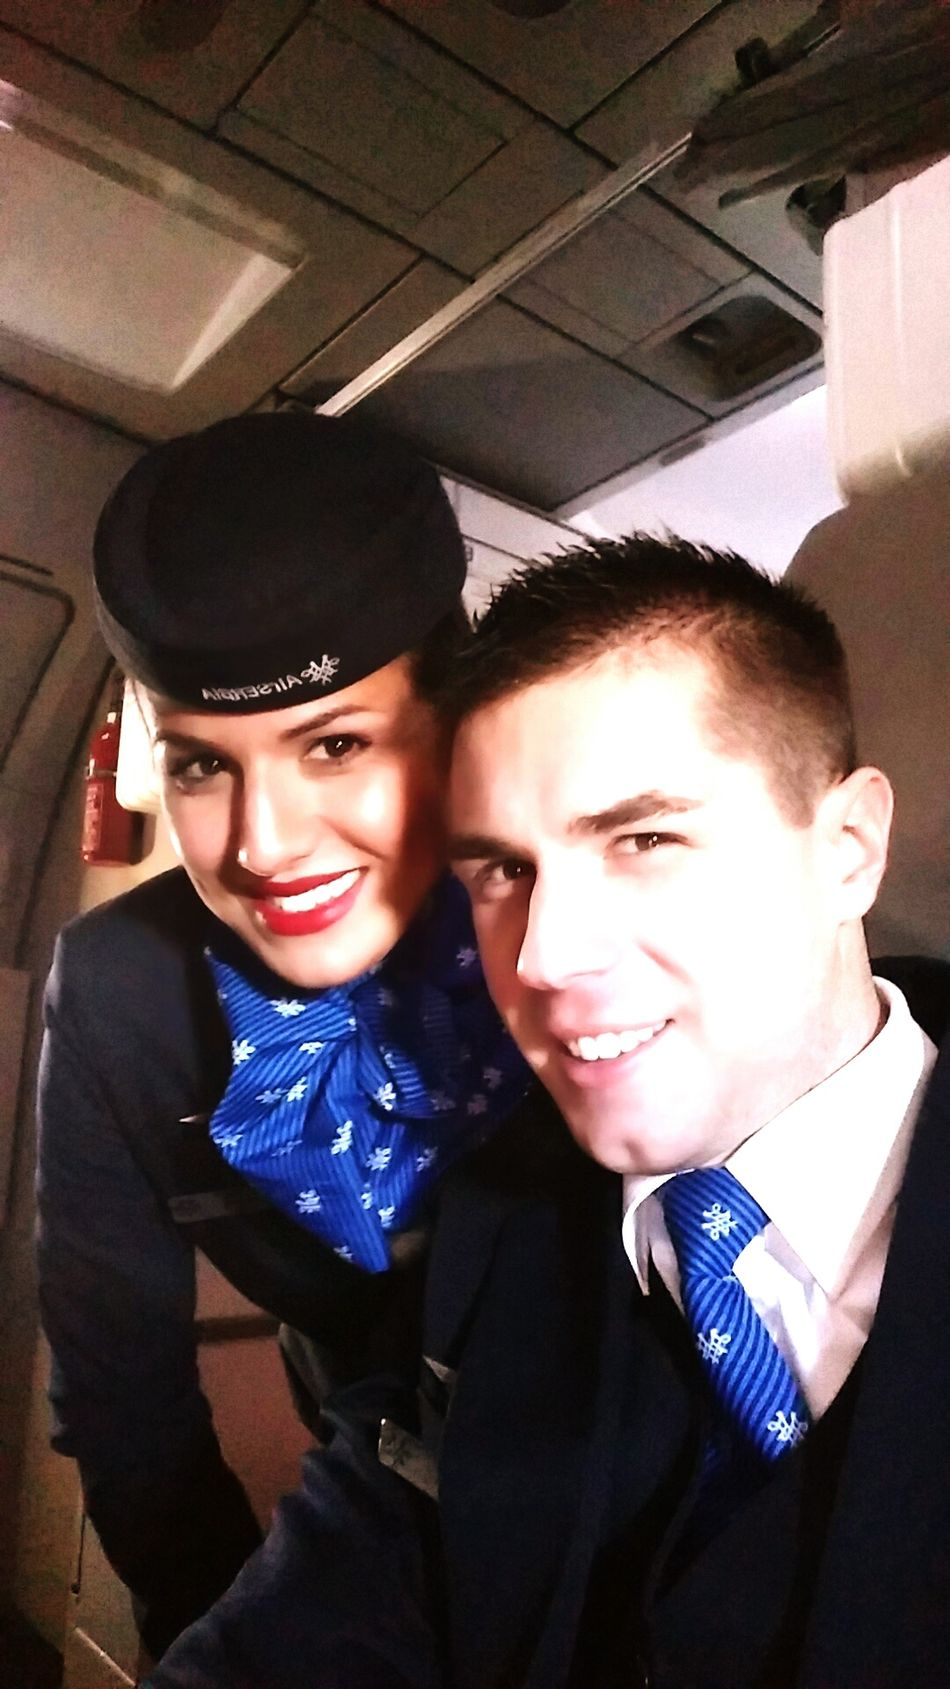 Crewlife Happycrew Arnada Stokholm Winter Lovely Aviationgeek Aviation Cabincrew AirbusA319 Happycrew